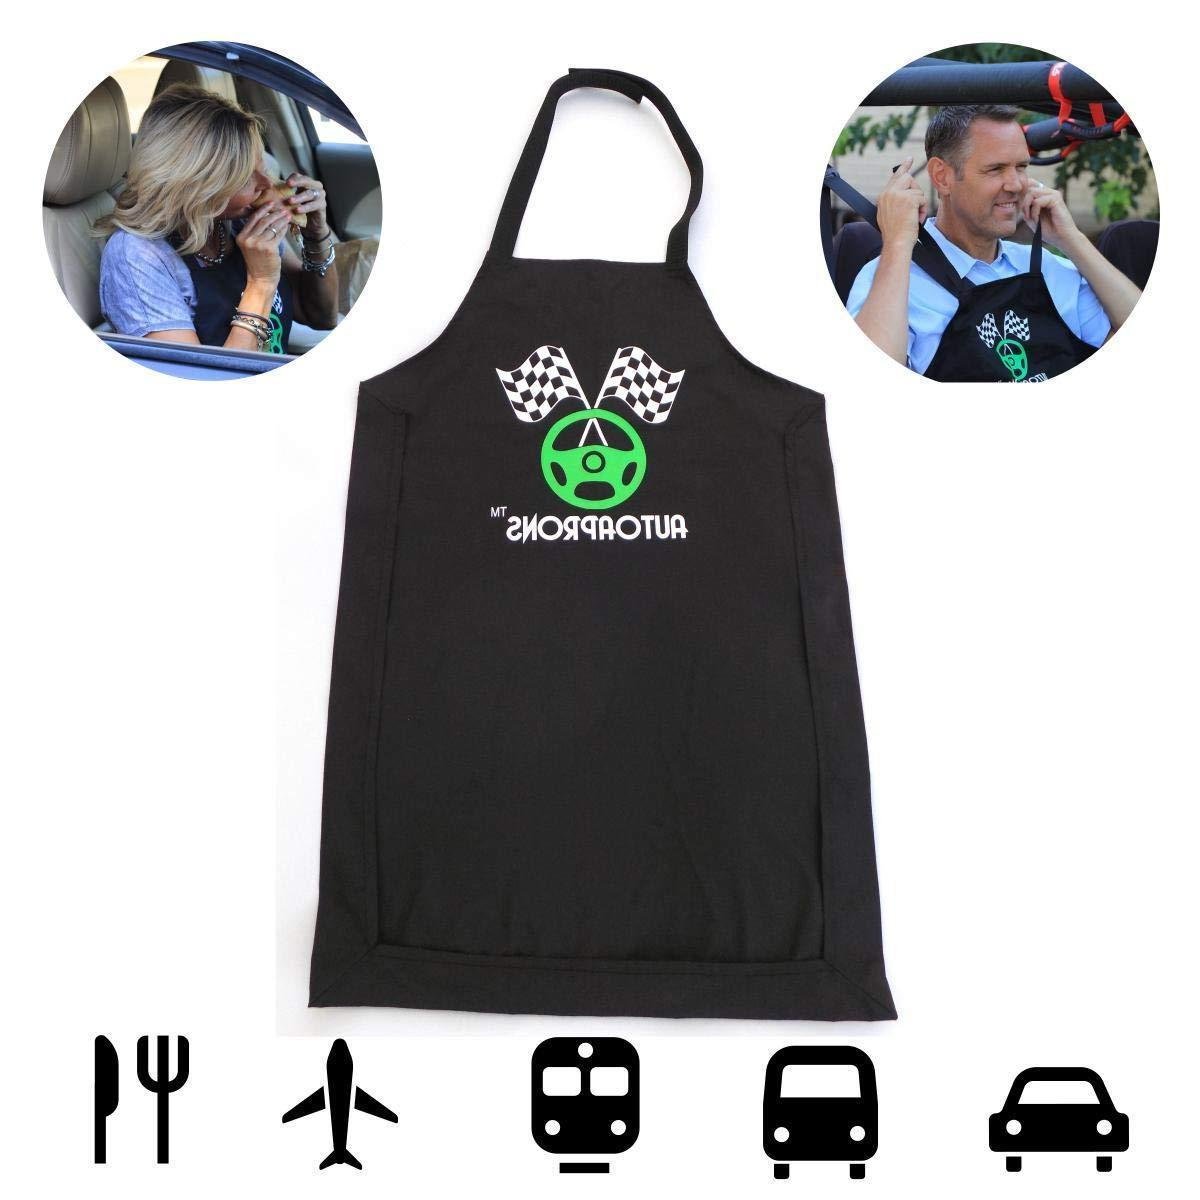 travel bib for men women and kids